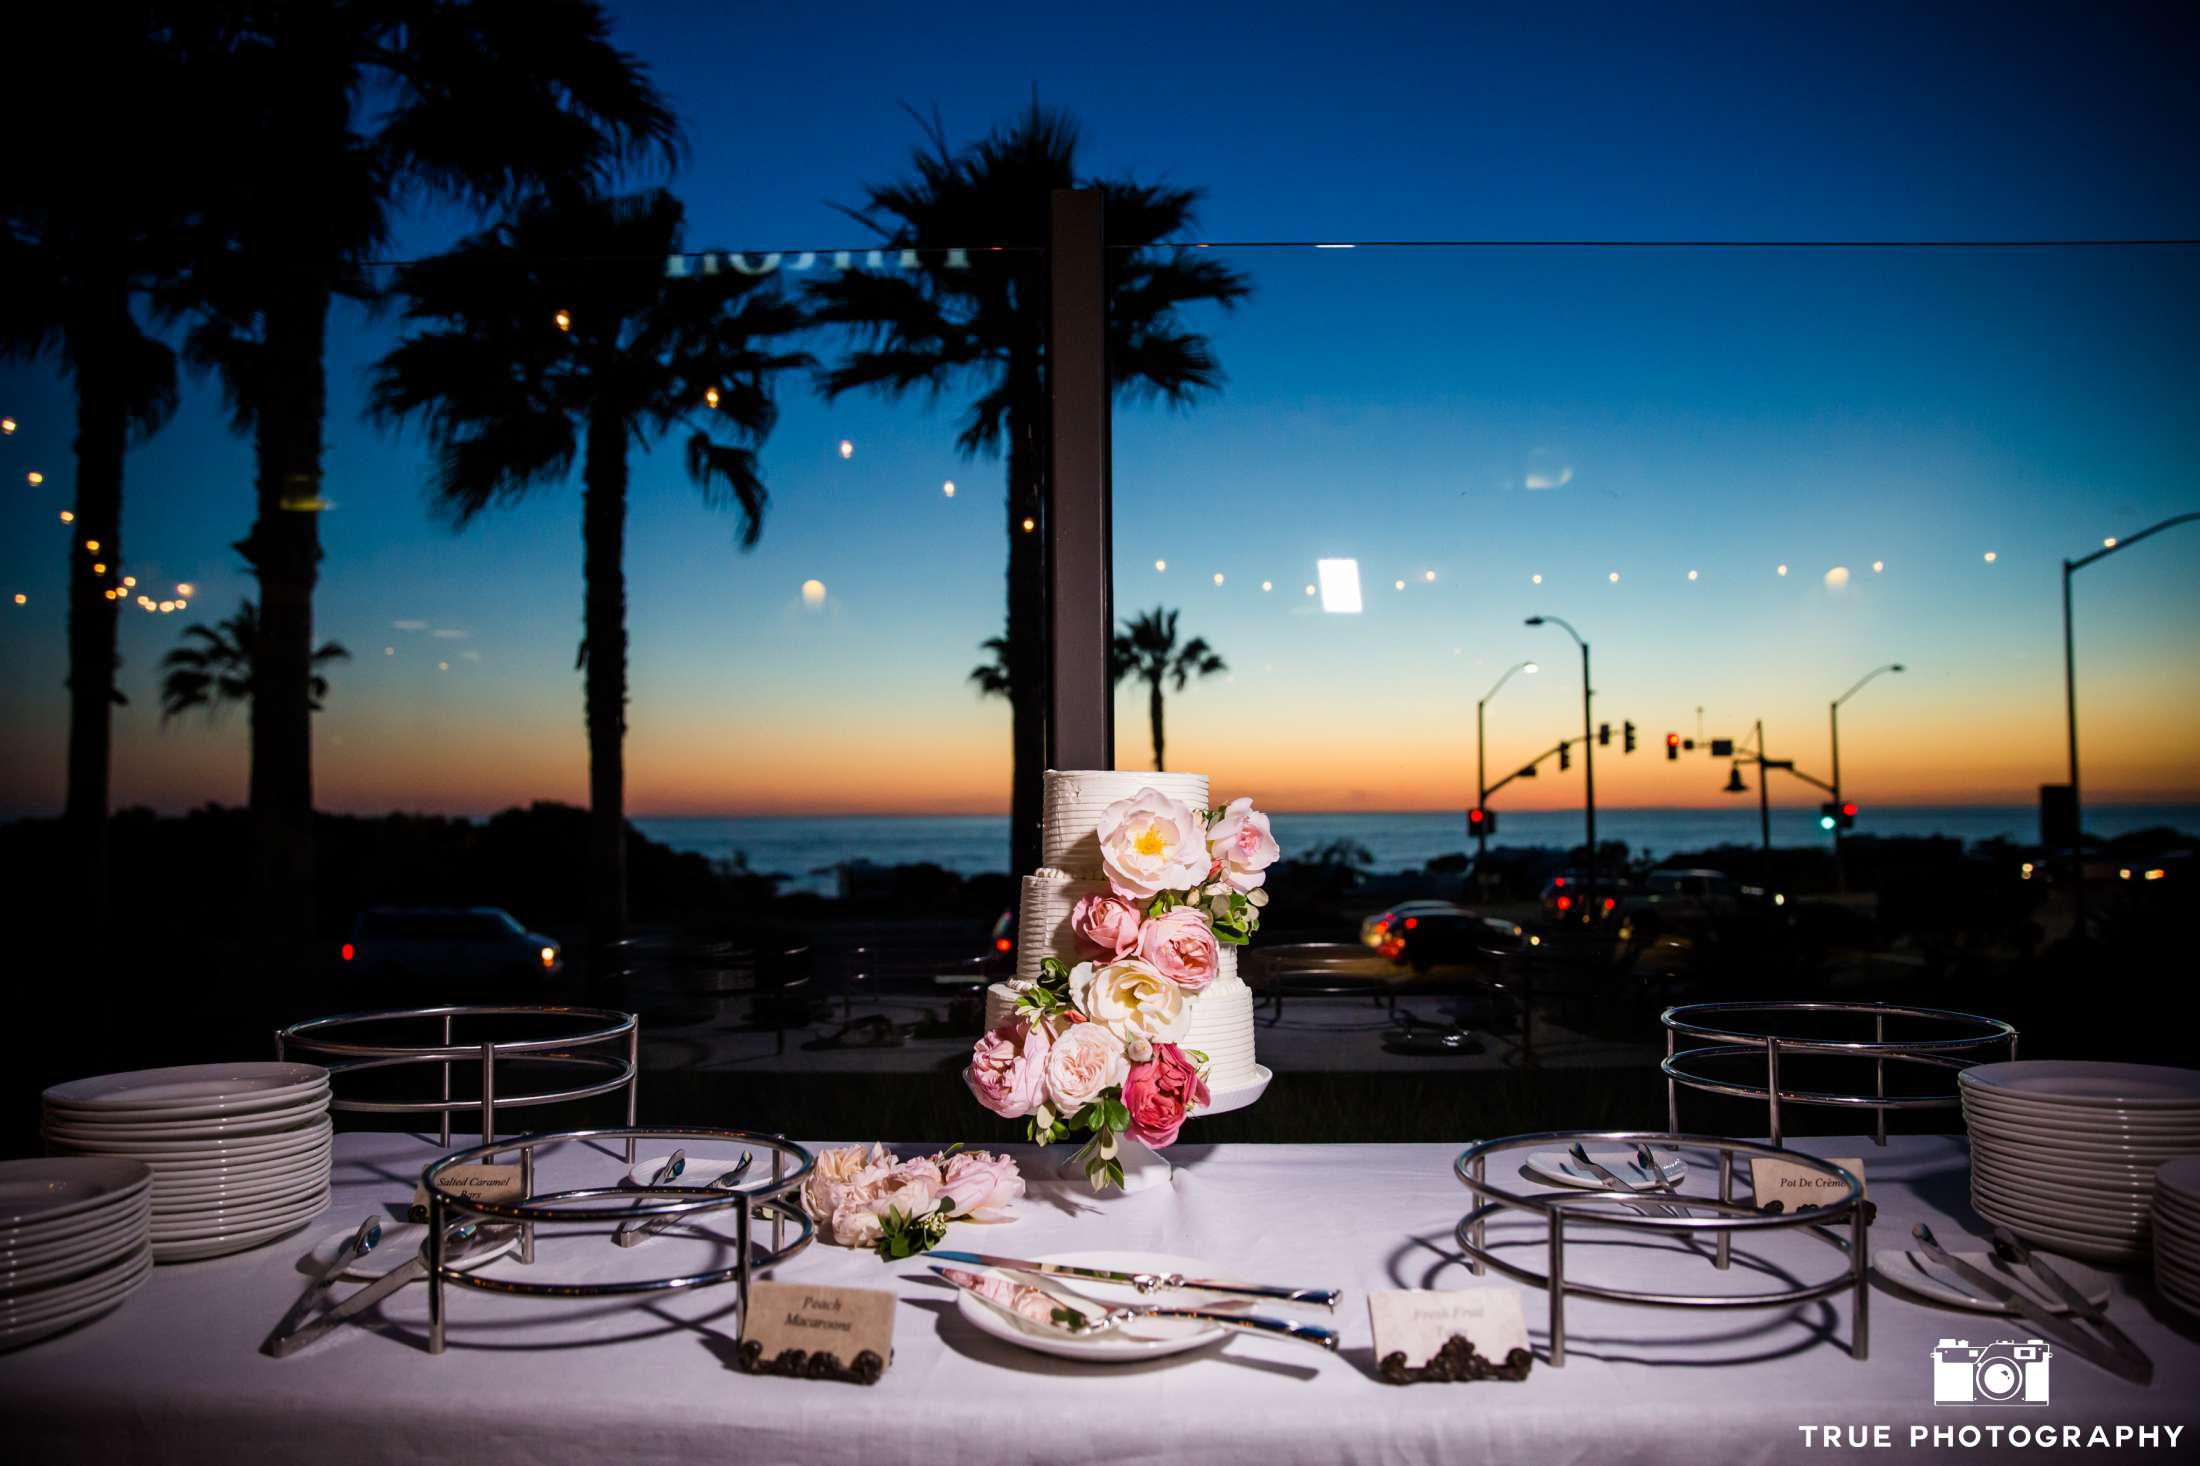 Cape Rey Carlsbad a Hilton Resort wedding cake during sunset